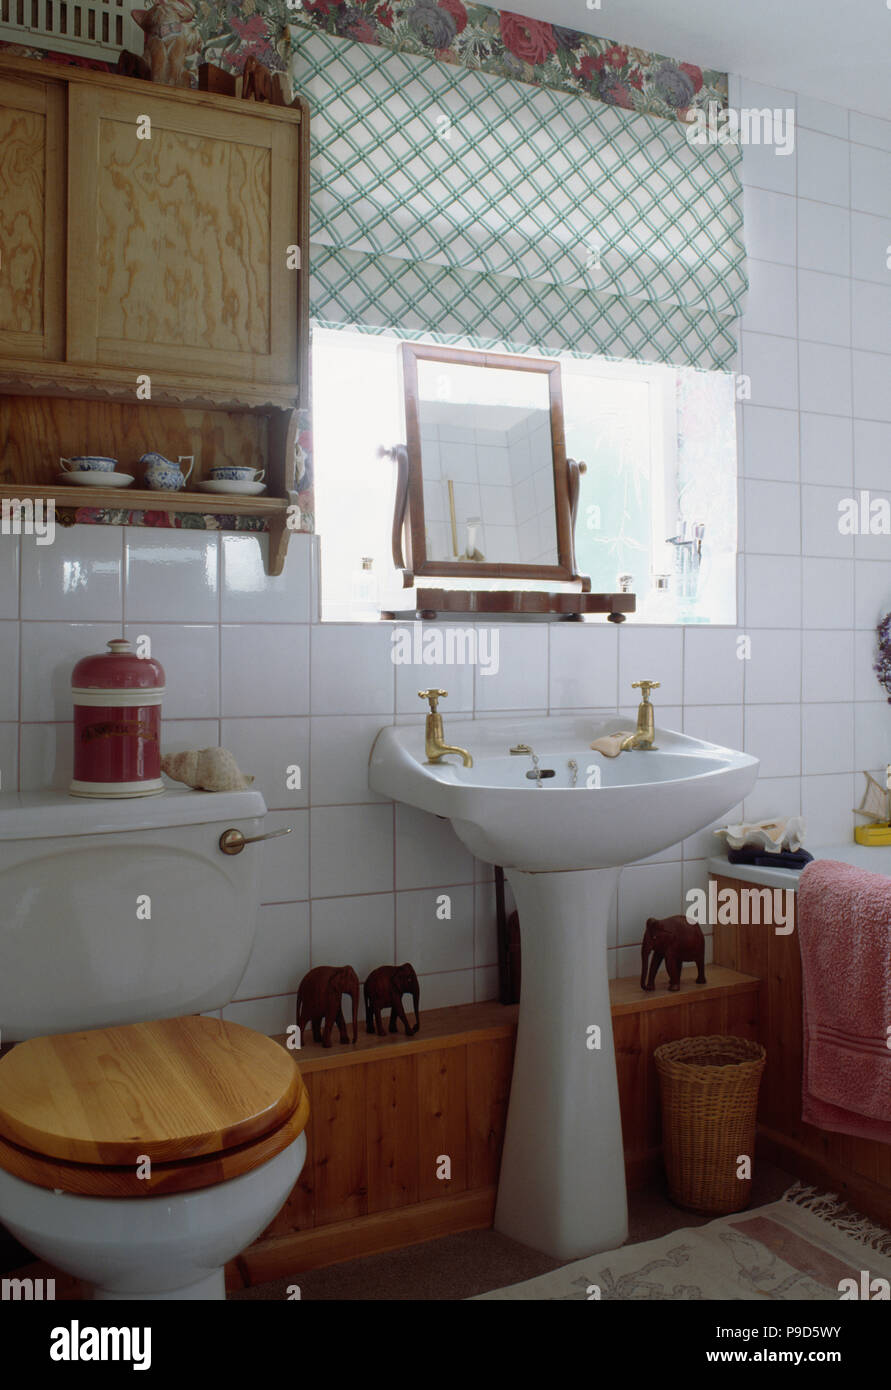 Picture of: Wooden Cabinet Above Toilet With Wooden Seat In Small Bathroom With Green Checked Blind Above Pedestal Basin Stock Photo Alamy